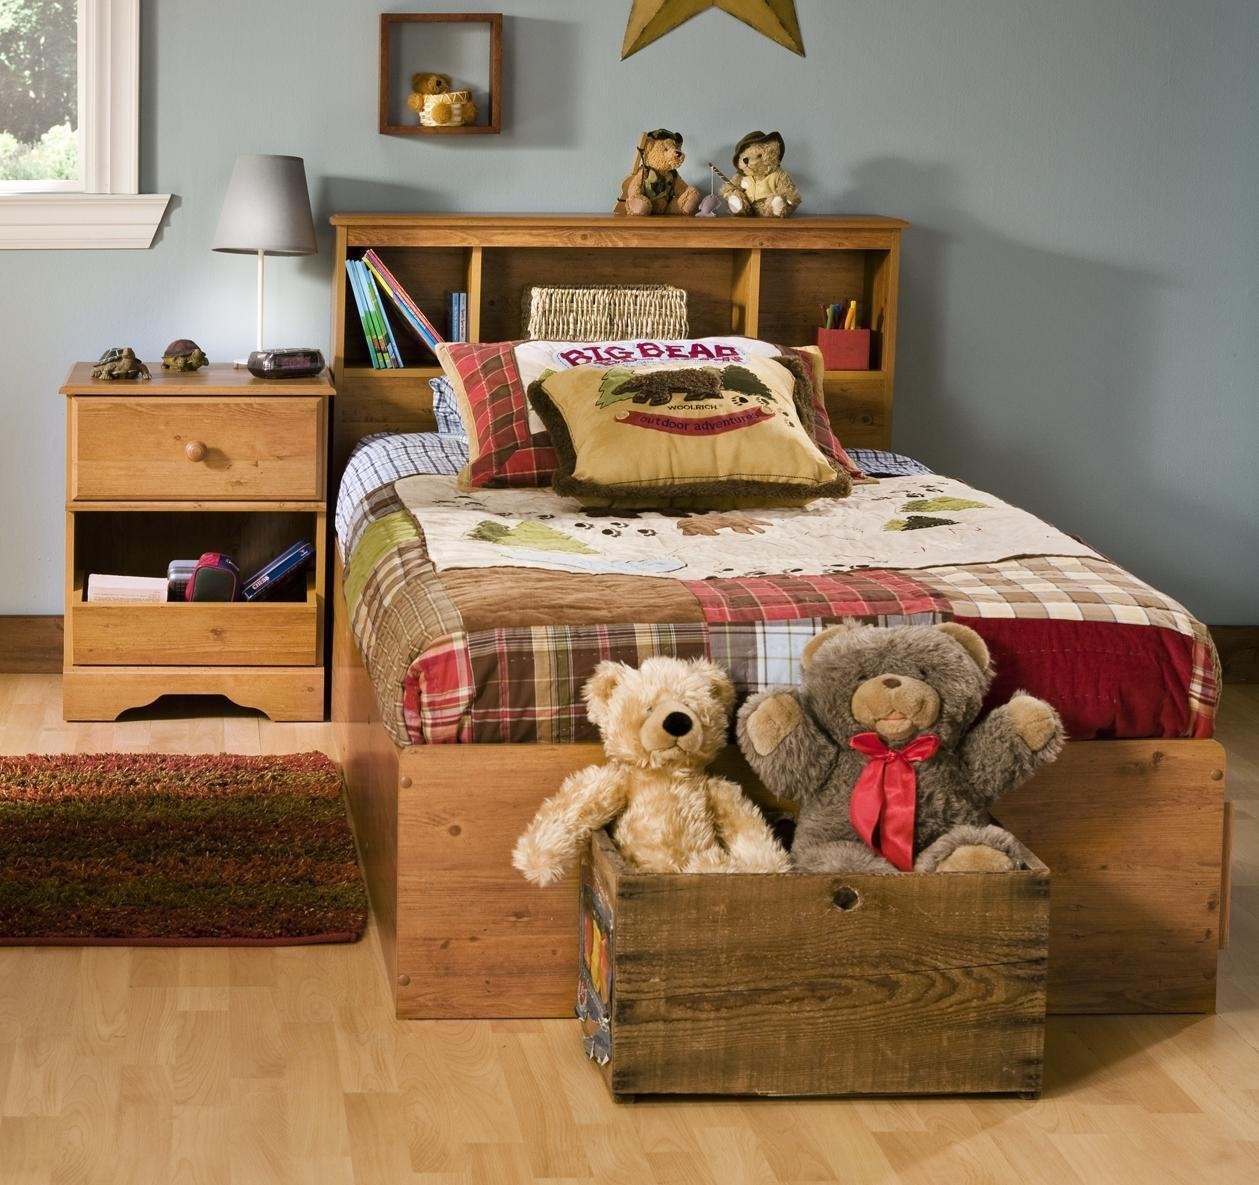 pine bedroom set. Amazon com  South Shore Amesbury Kids Twin Wood Captain s Bed 3 Piece Bedroom Set in Country Pine Furniture Sets